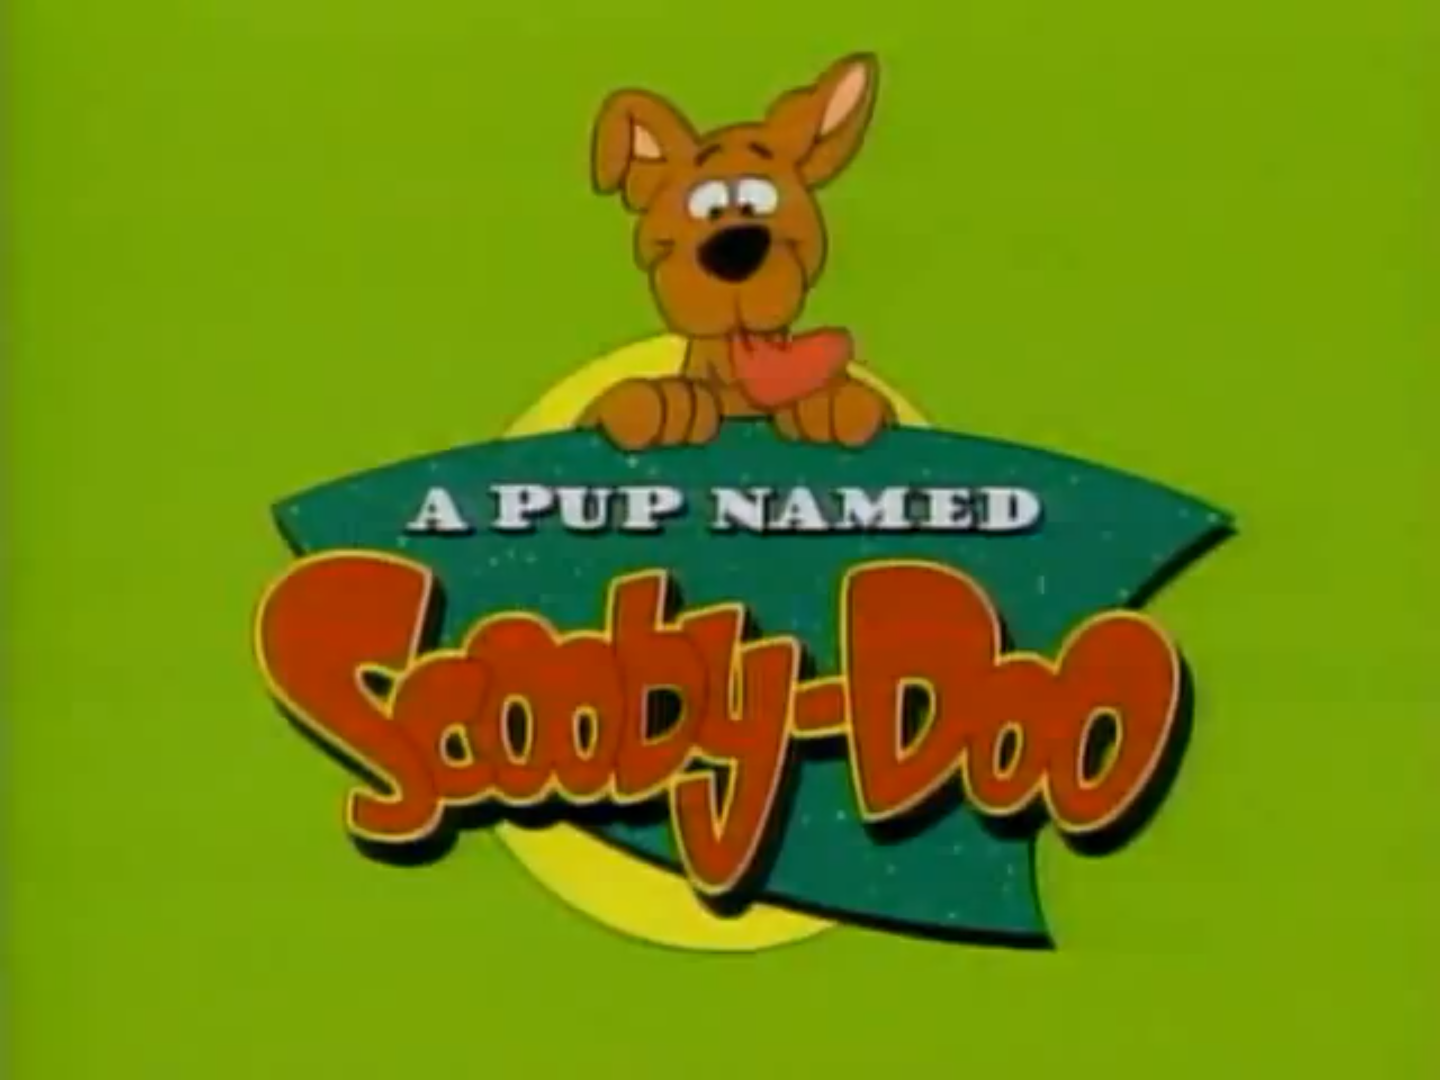 A Pup Named Scooby-Doo (2018 show)